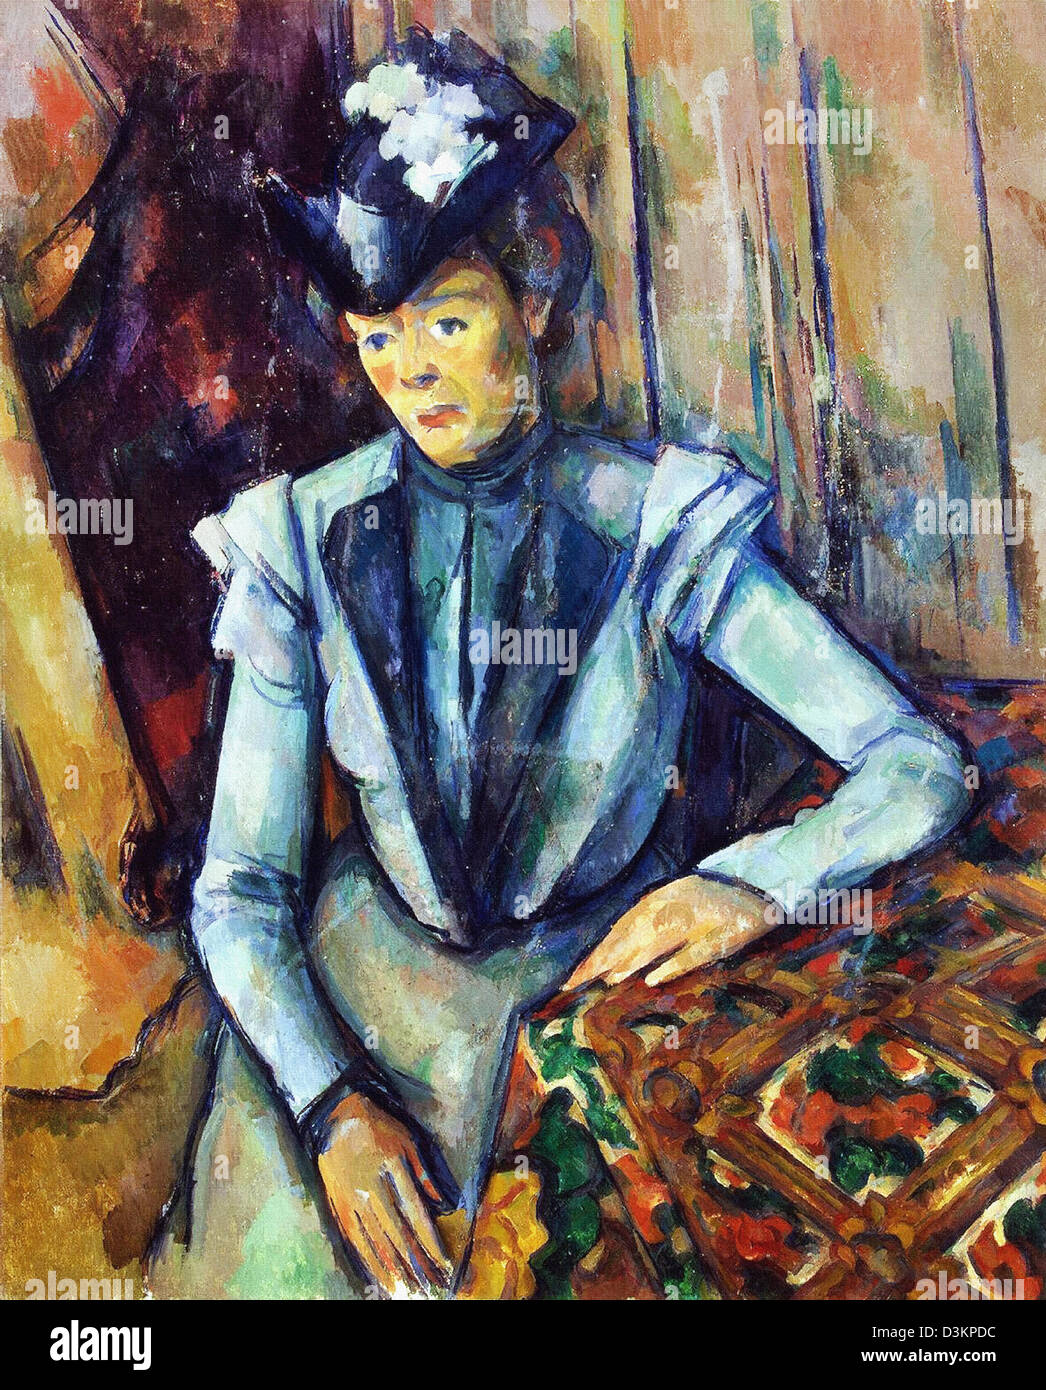 Paul Cezanne, Lady in Blue 1904 Oil on canvas. Hermitage Museum, Saint Petersburg - Stock Image